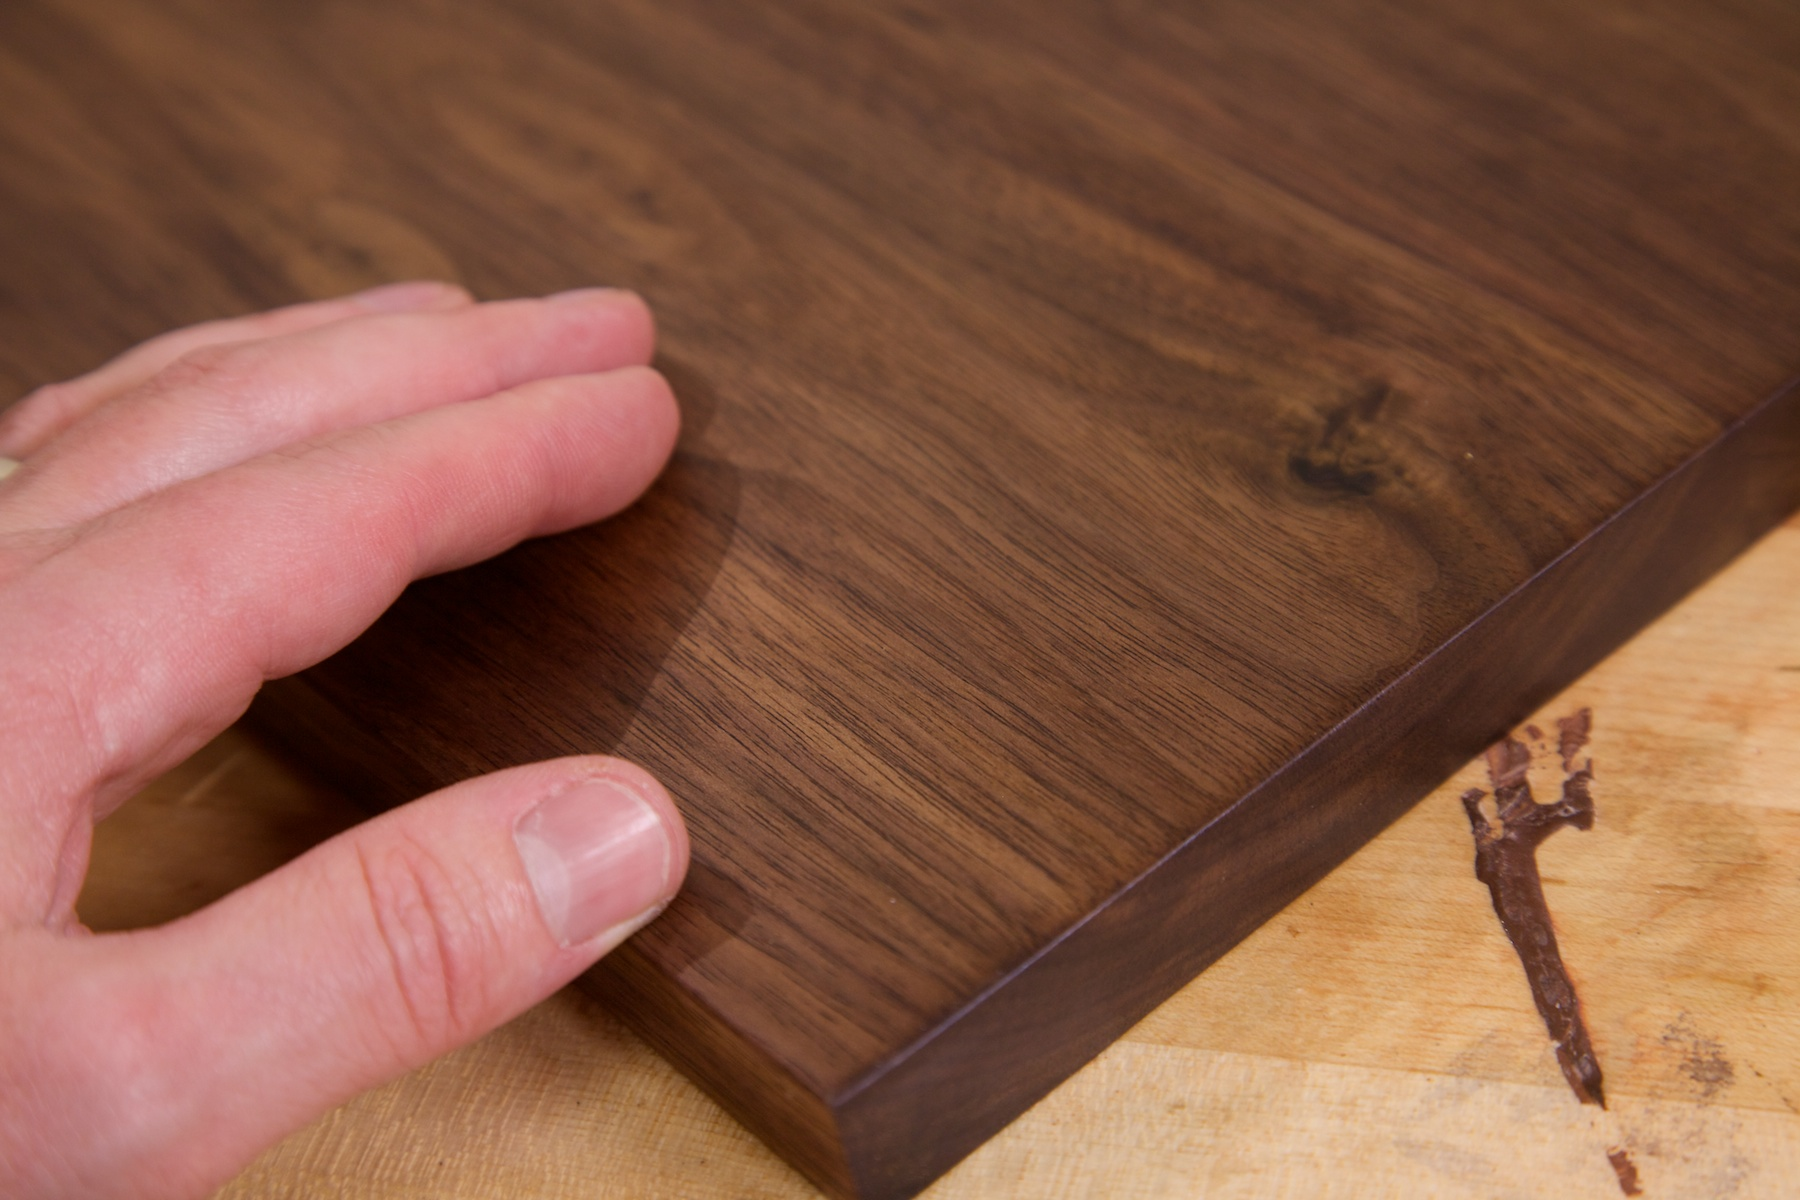 With a closer look at the finished walnut youll see that the grain is